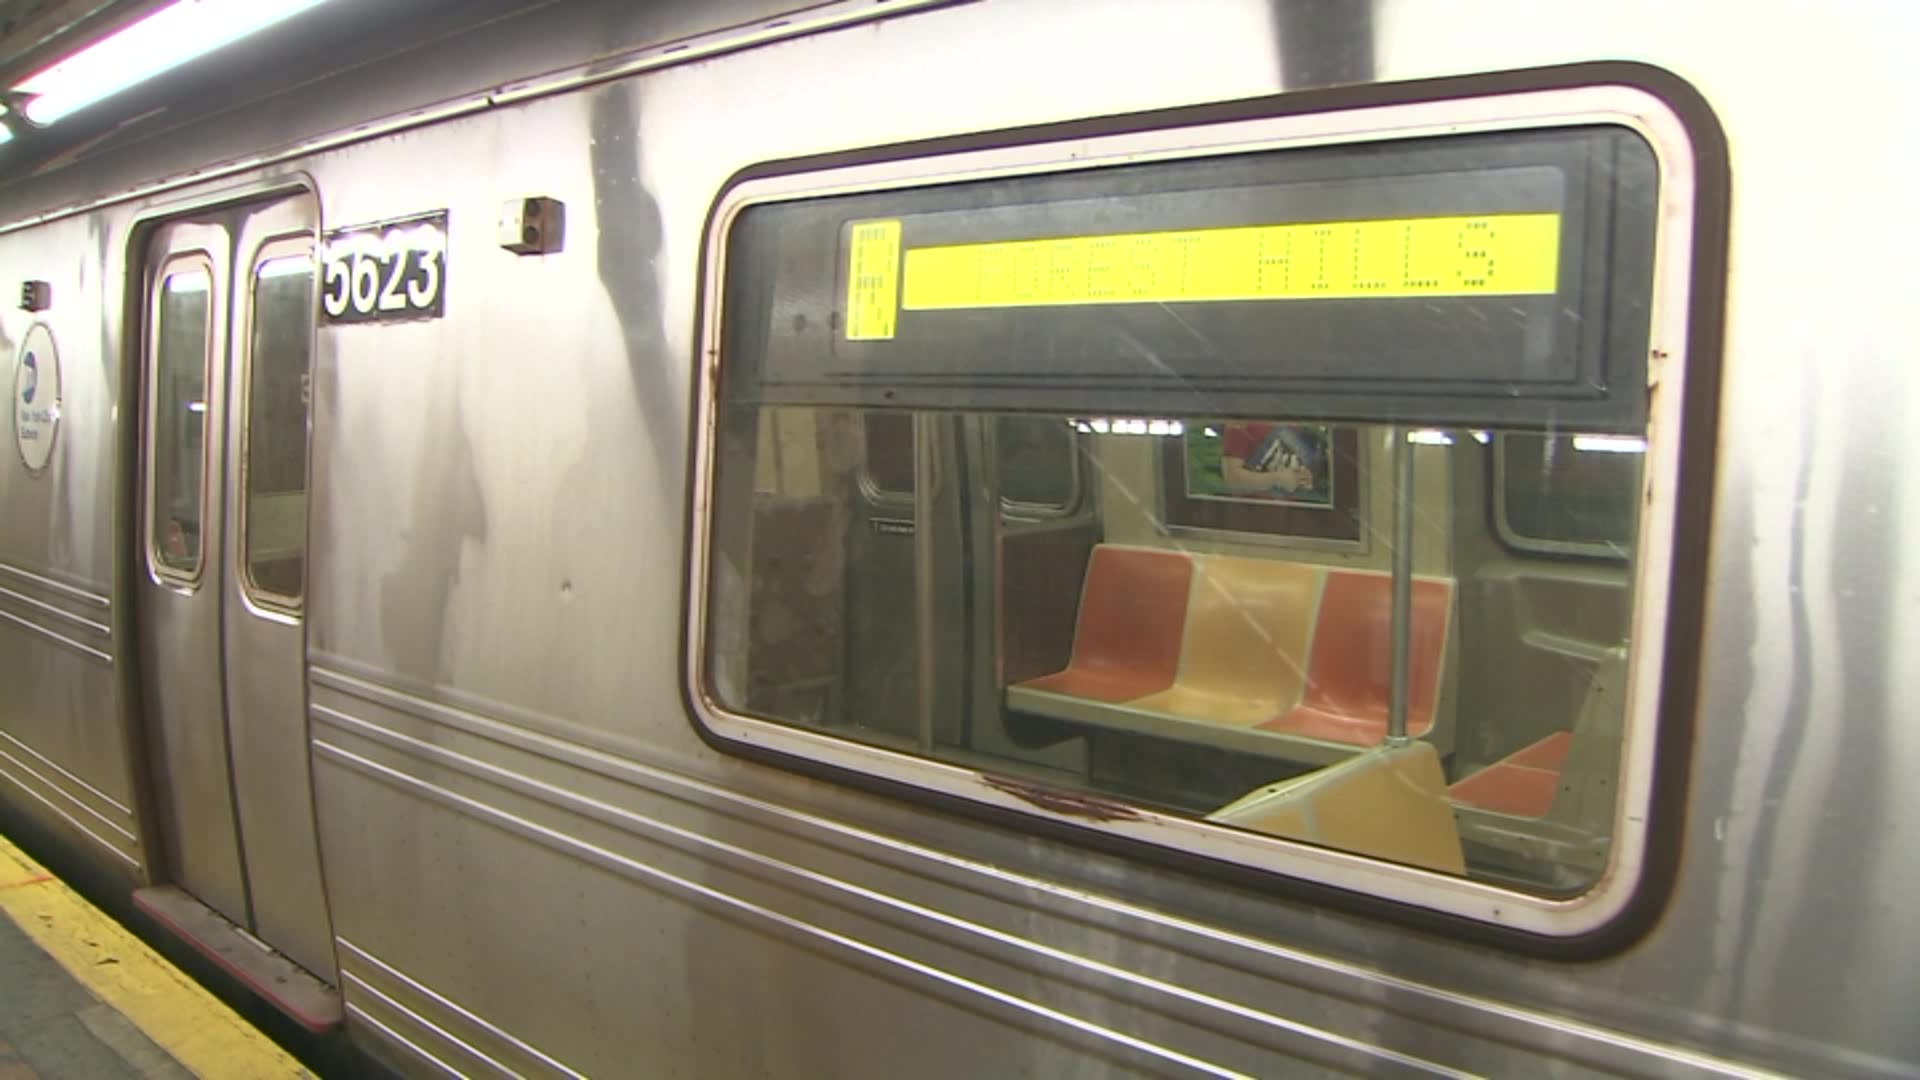 Man Slashed by Fellow Rider on NYC Subway